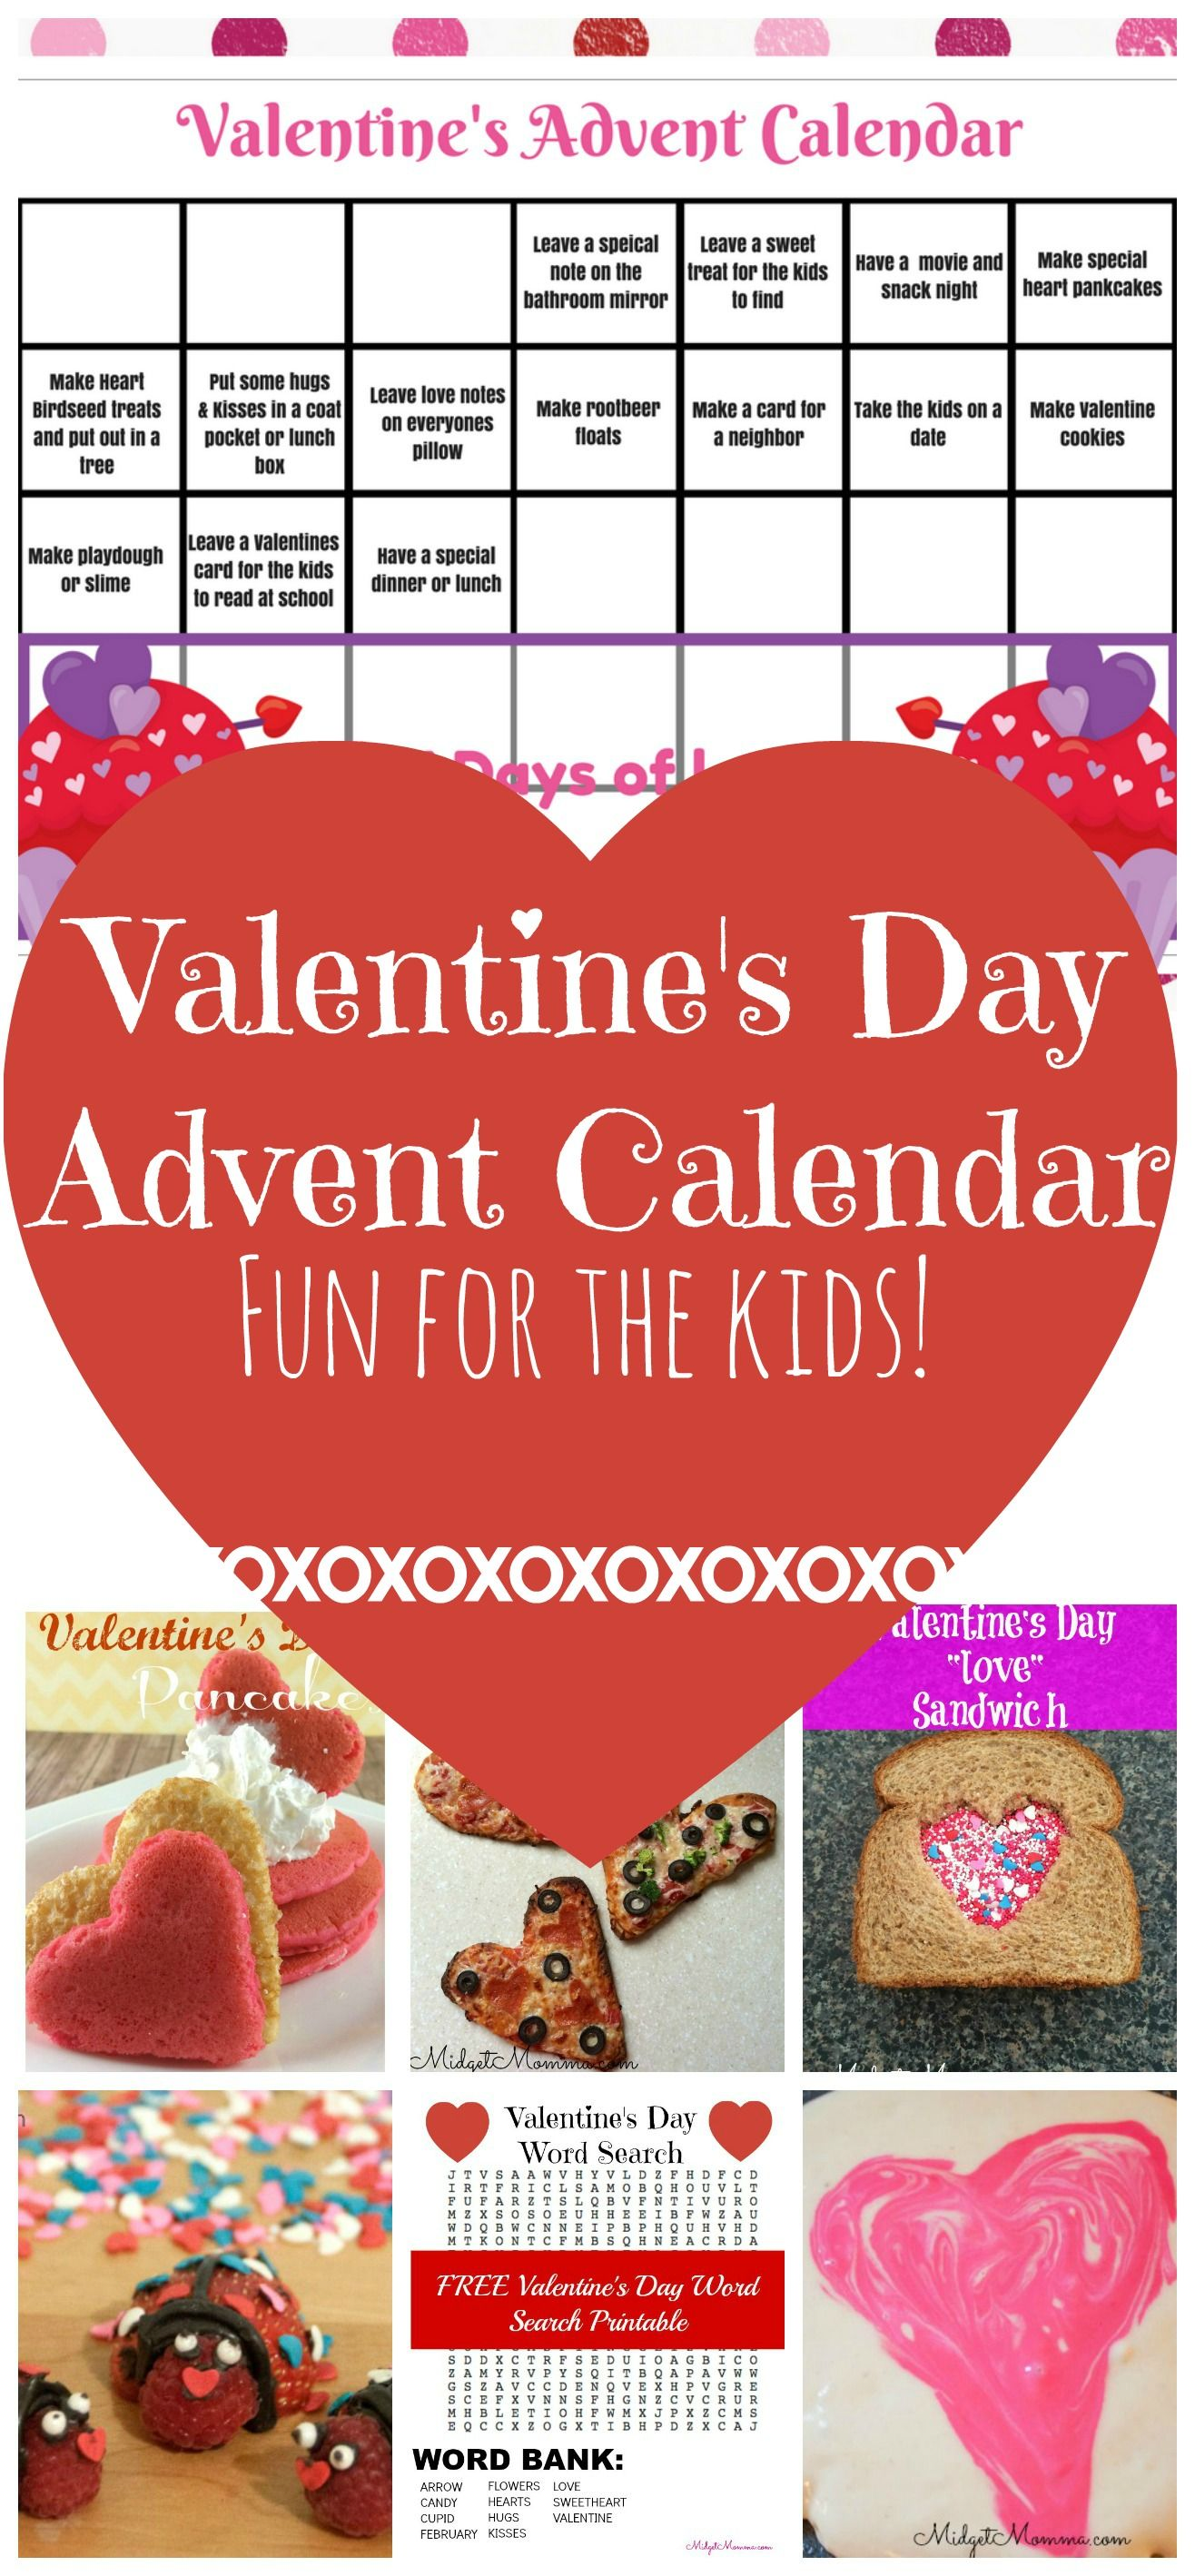 Valentine S Day Advent Calendar Print This Printable And Have Fun Counting Down To With The Kids